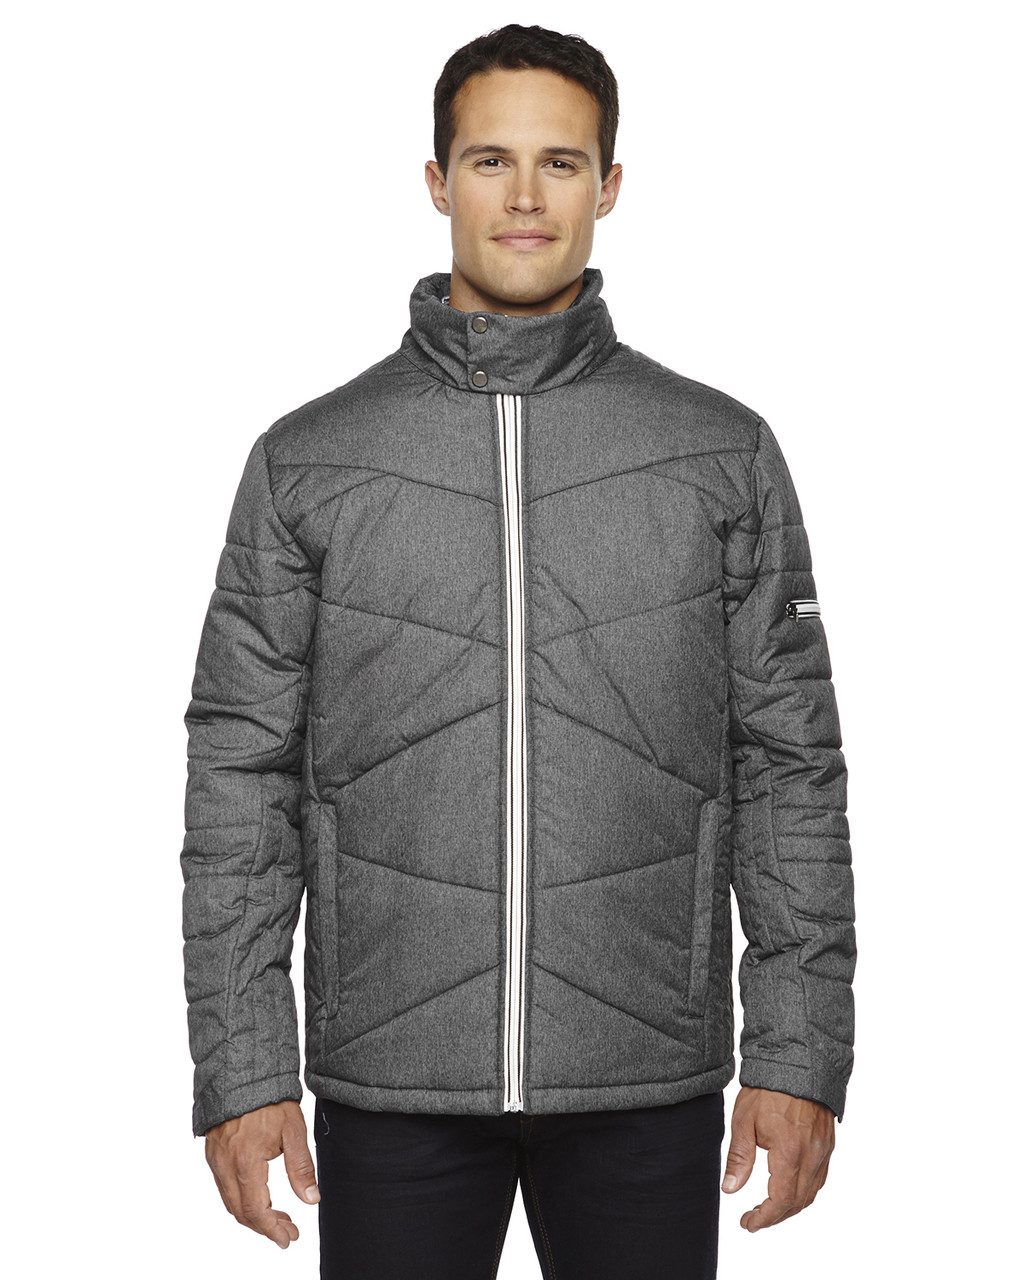 Carbon Heather 88698 North End Sport Blue Avant Insulated Jacket with Heat Reflect Technology | Blankclothing.ca